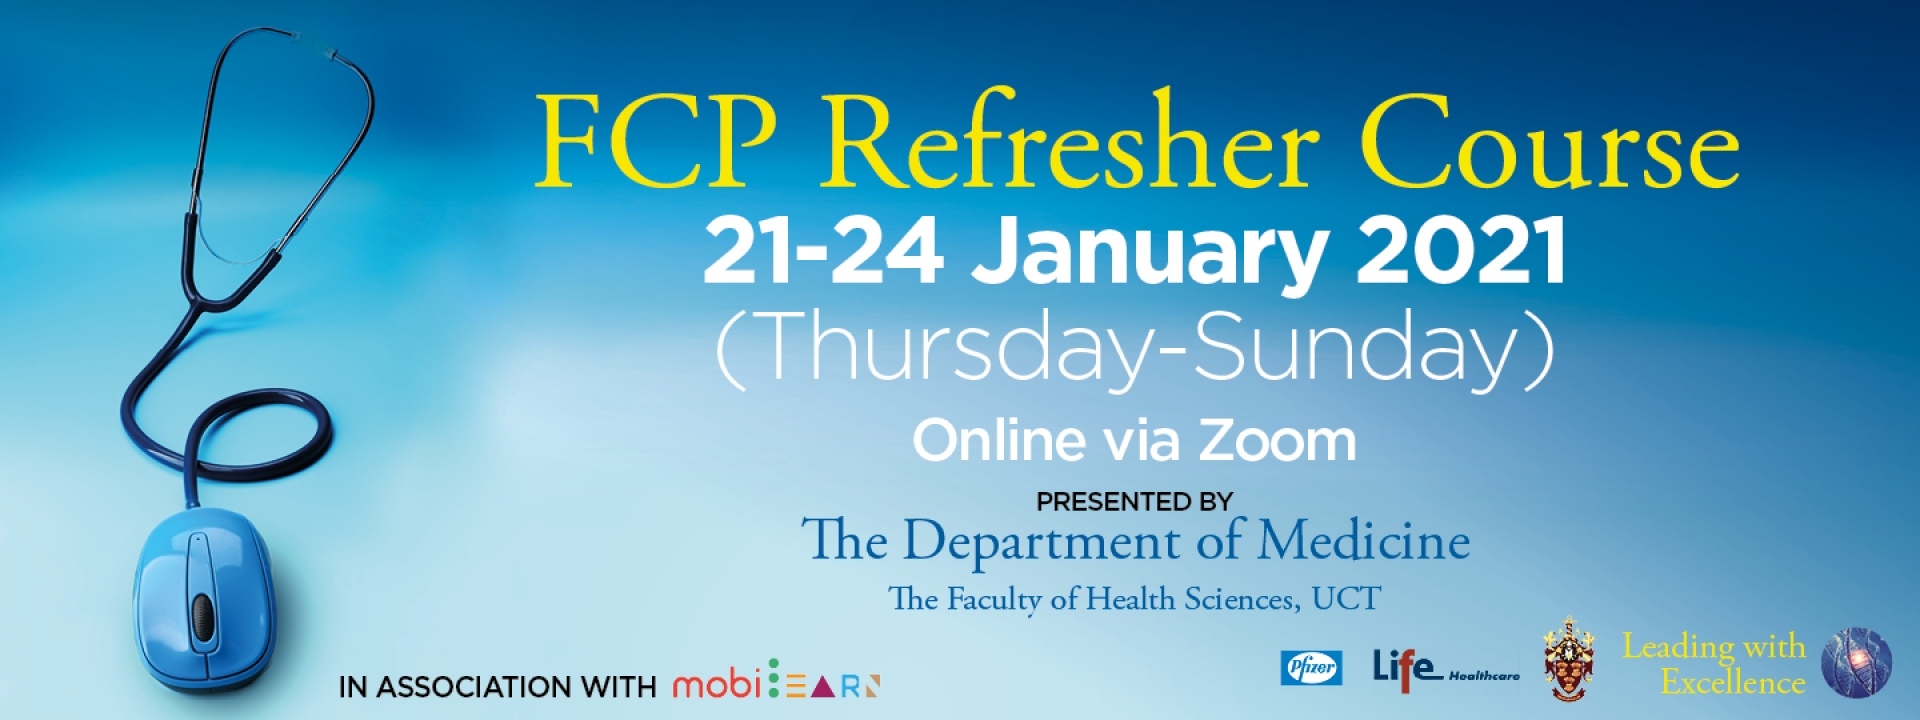 2021 FCP Refresher Course